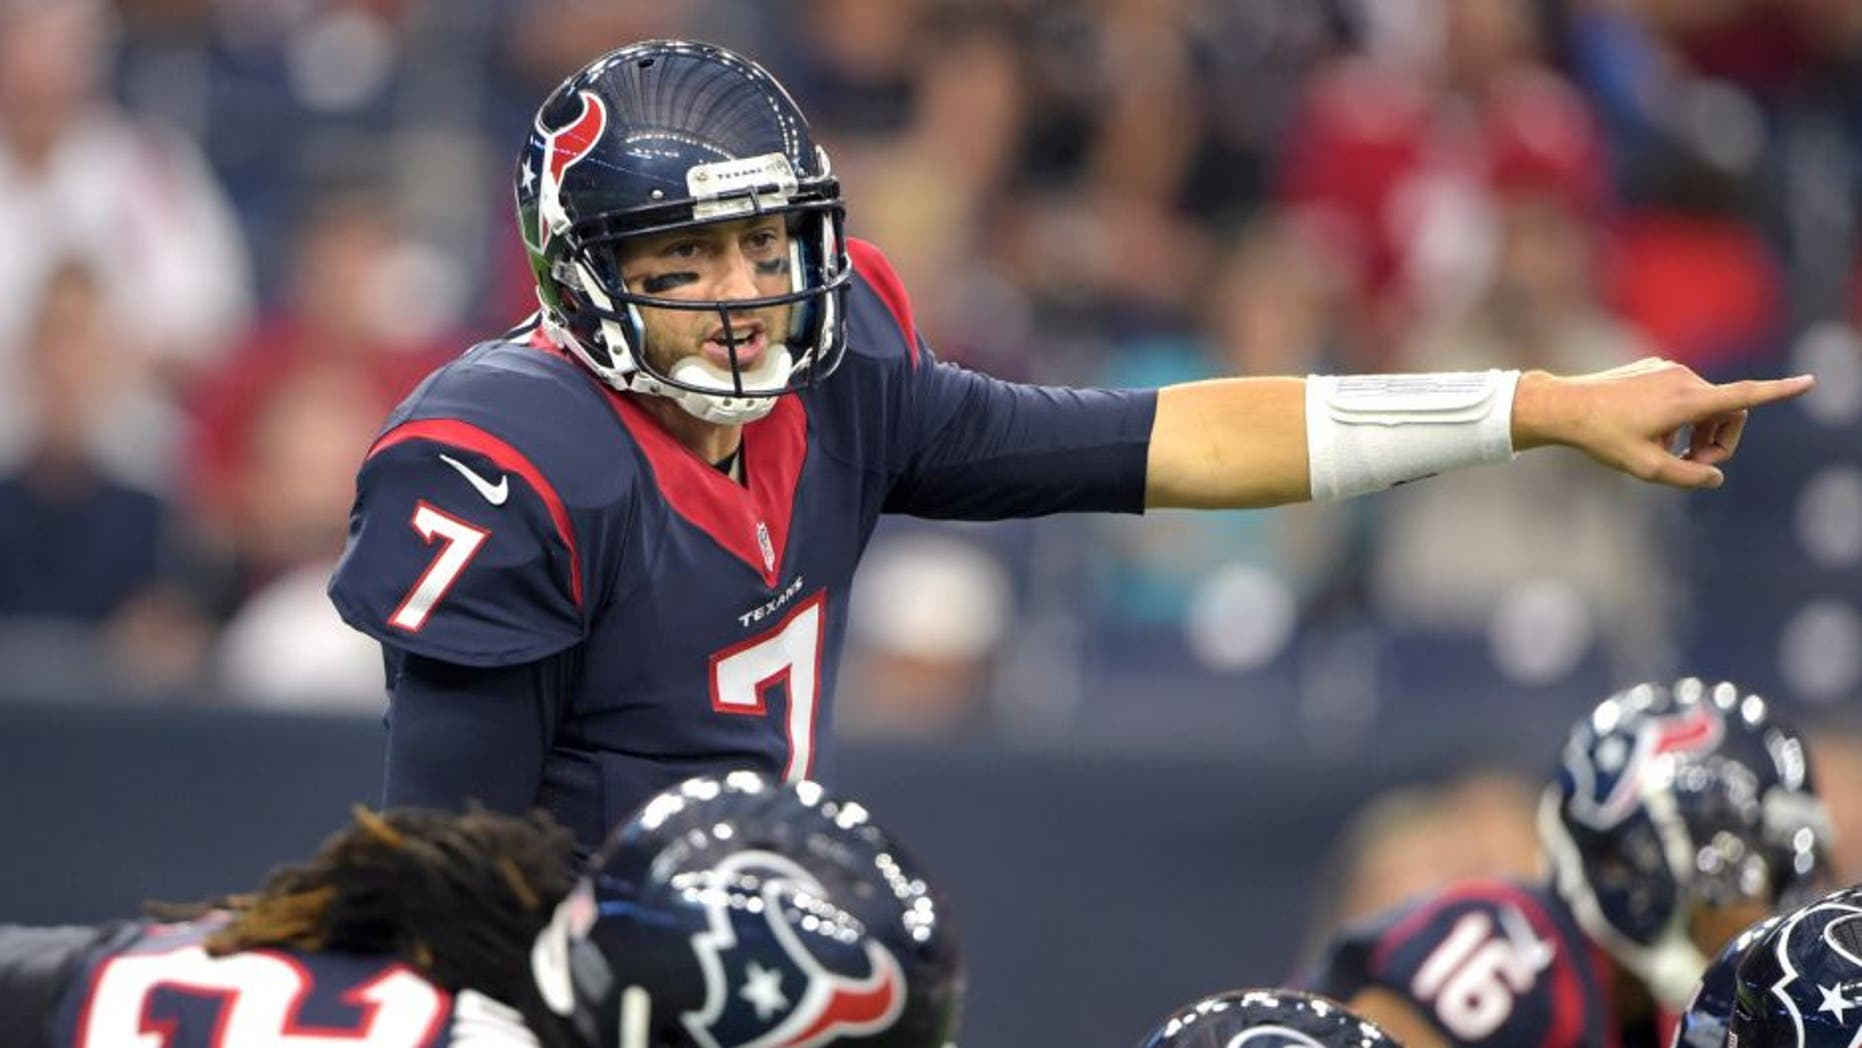 Aug 15, 2015; Houston, TX, USA; Houston Texans quarterback Brian Hoyer (7) gestures against the San Francisco 49ers in a preseason NFL football game at NRG Stadium. Mandatory Credit: Kirby Lee-USA TODAY Sports